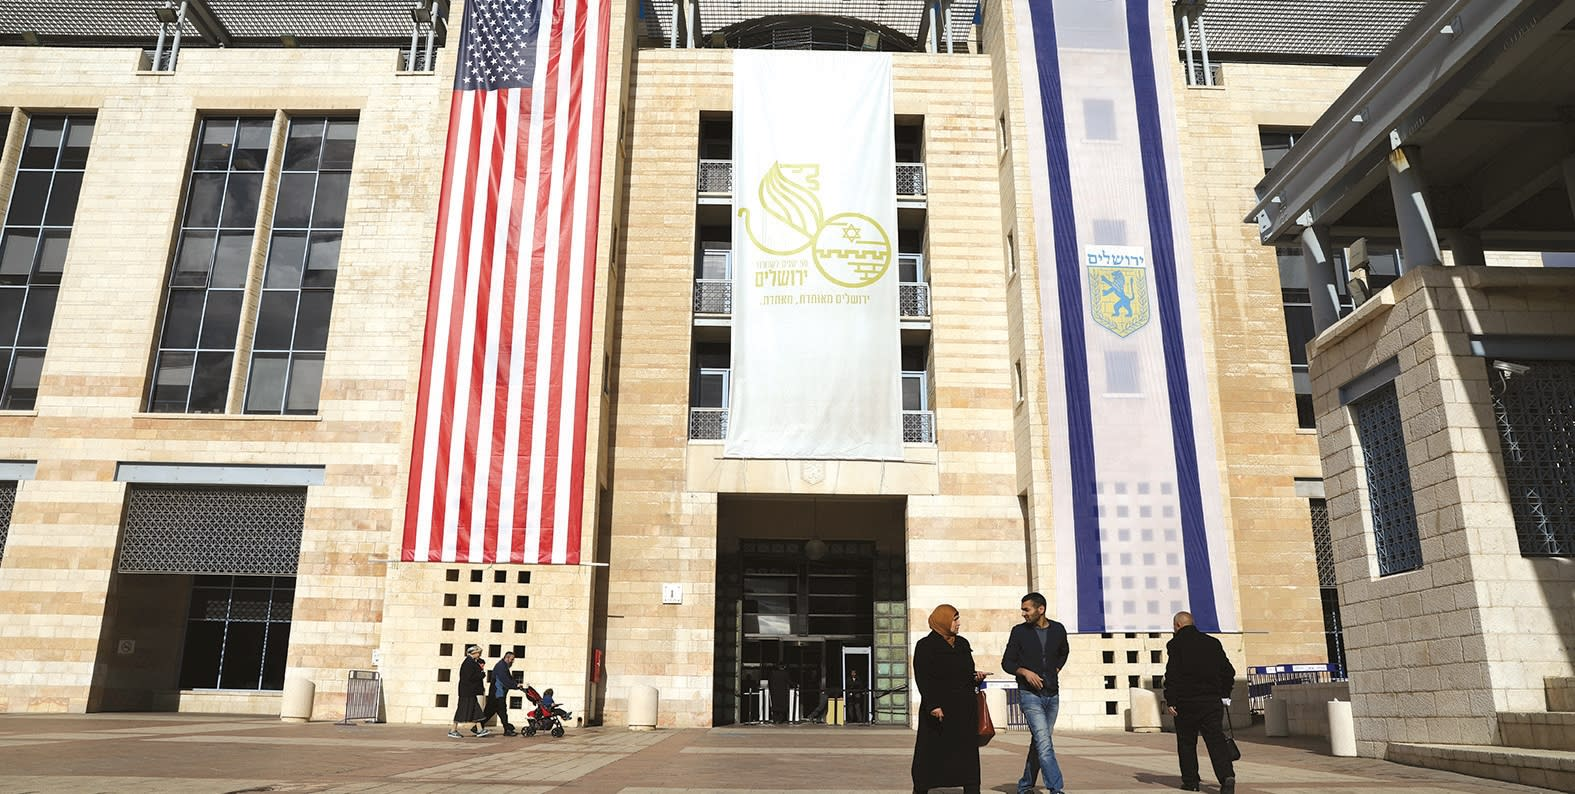 U.S. and Israel flags displayed in Jerusalem after Washington recognized Jerusalem as the capital. (Reuters)